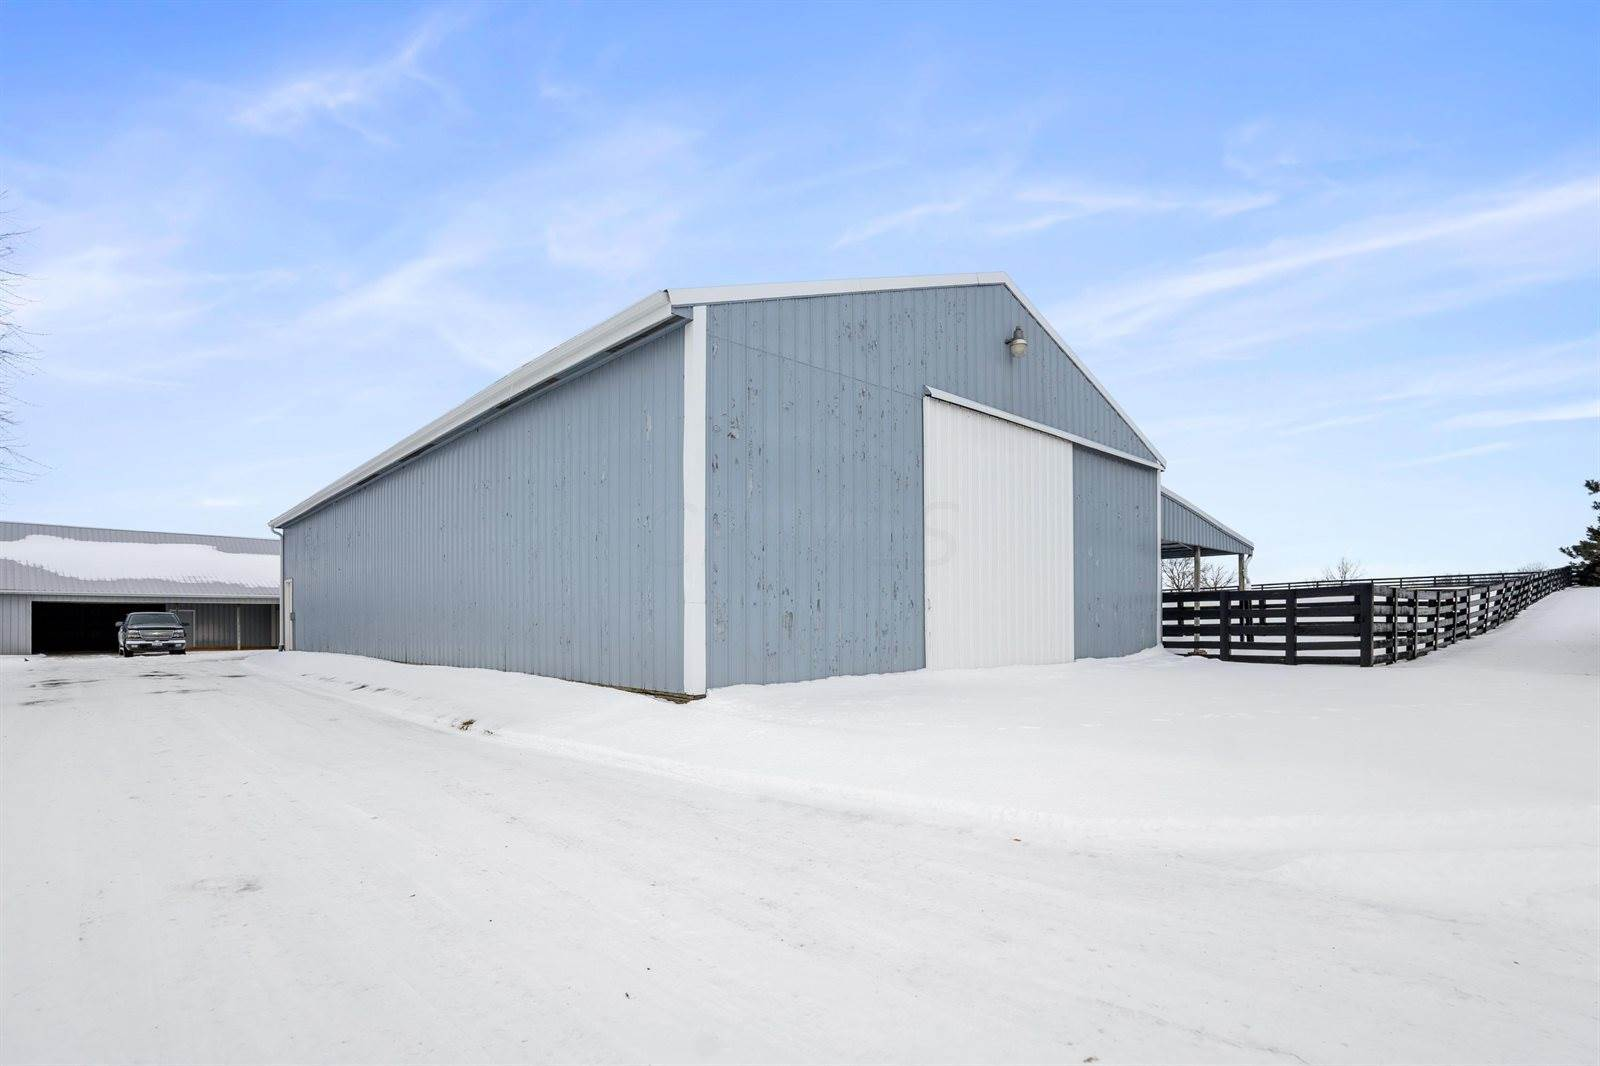 325 State Route 56 NW, London, OH 43140